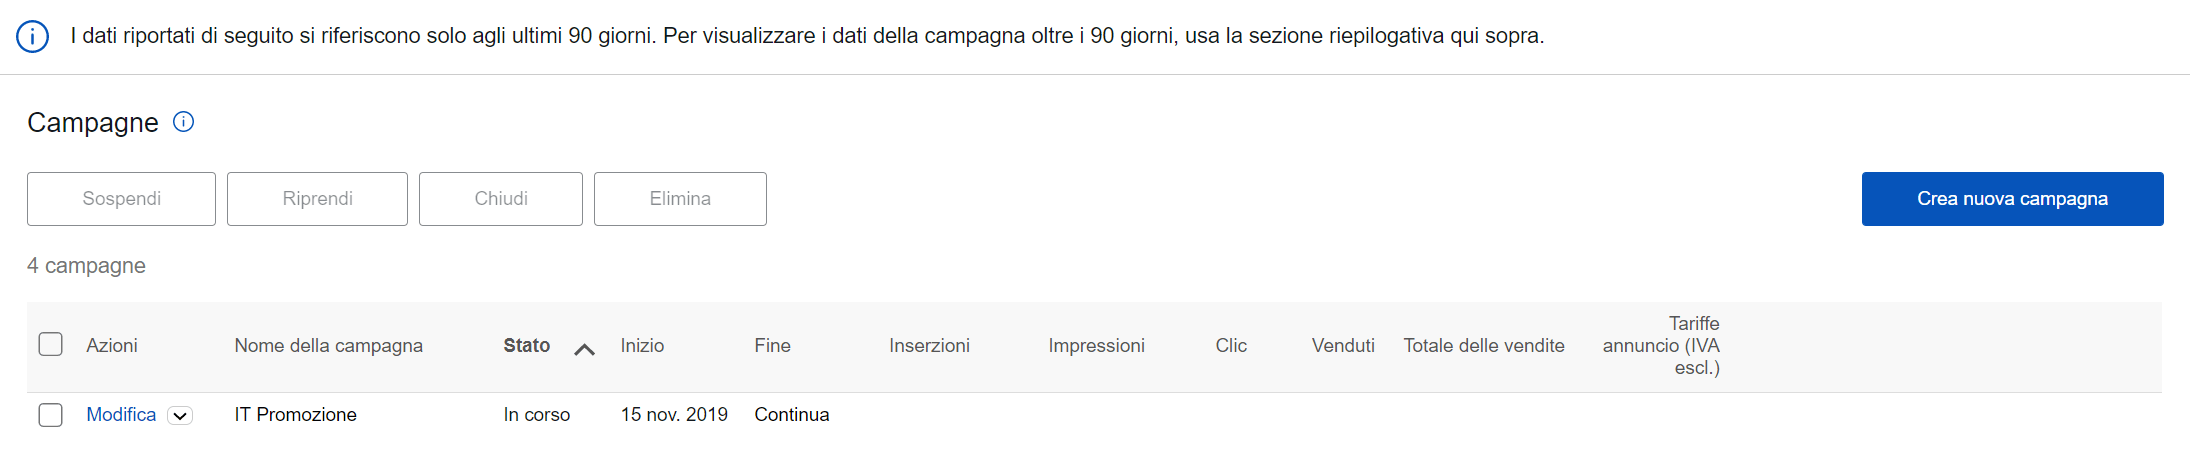 come modificare una campagna